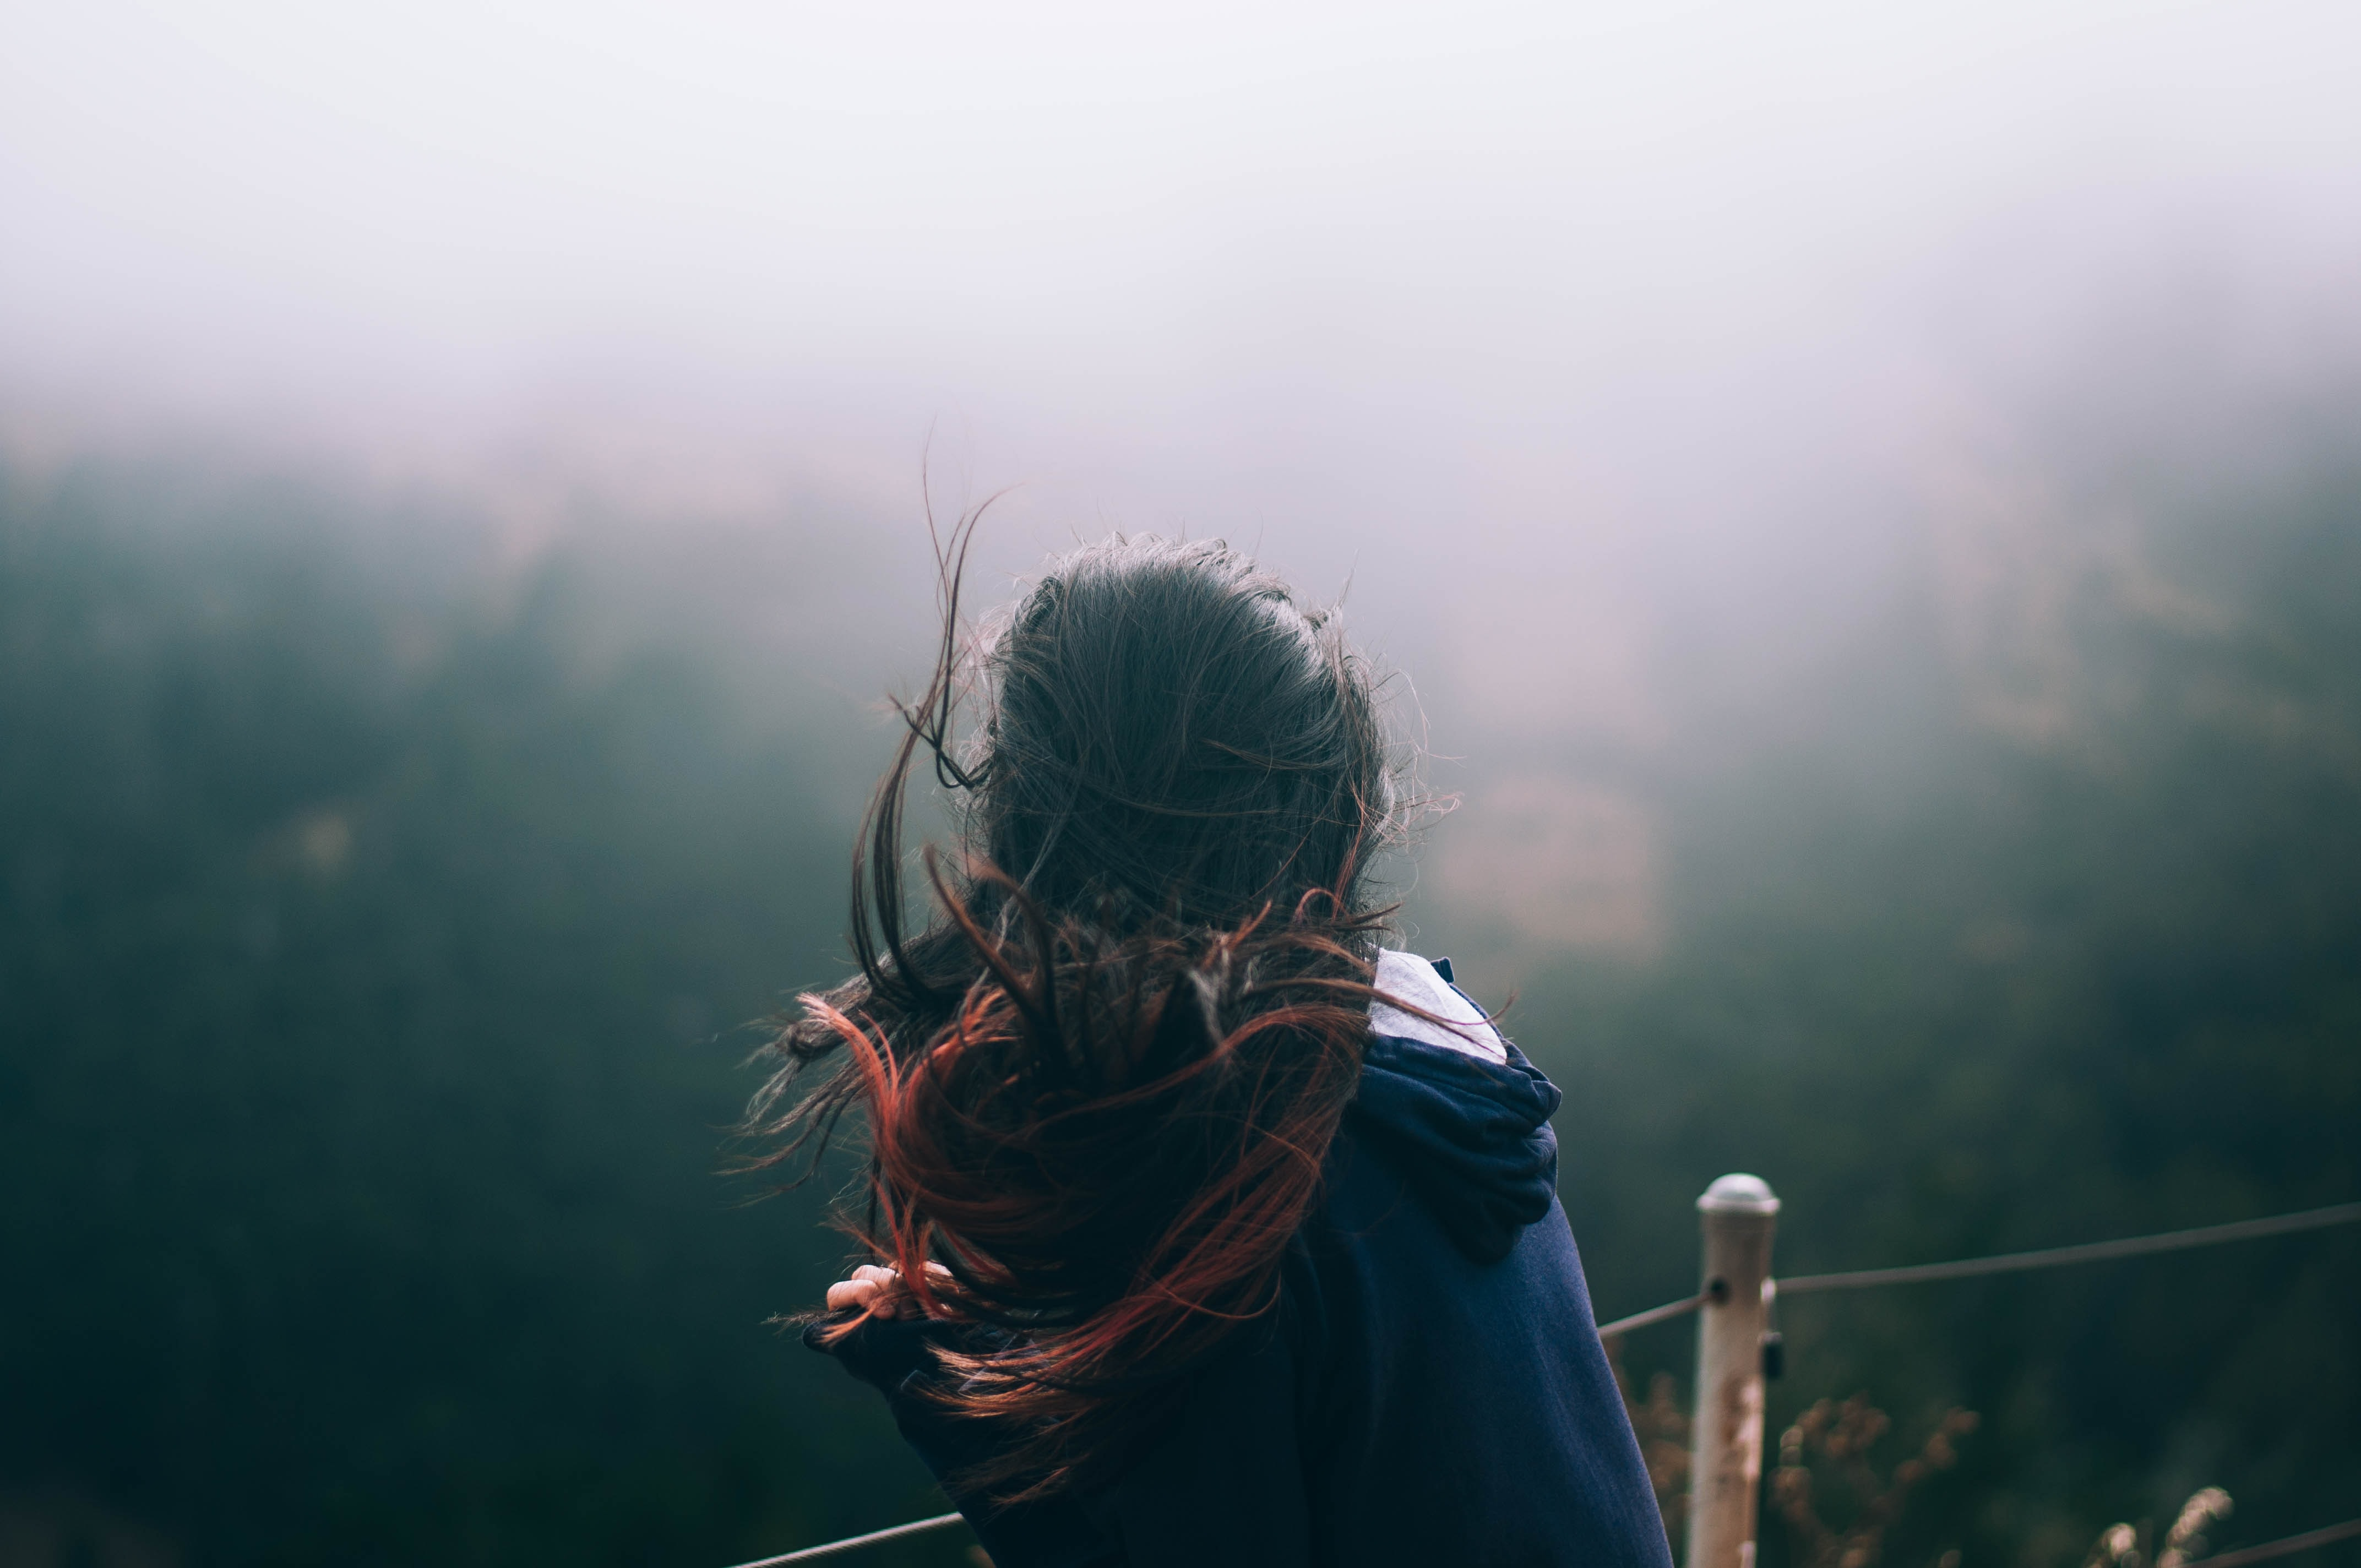 A girl's hair moving in the wind as she looks out at a fog covered San Francisco